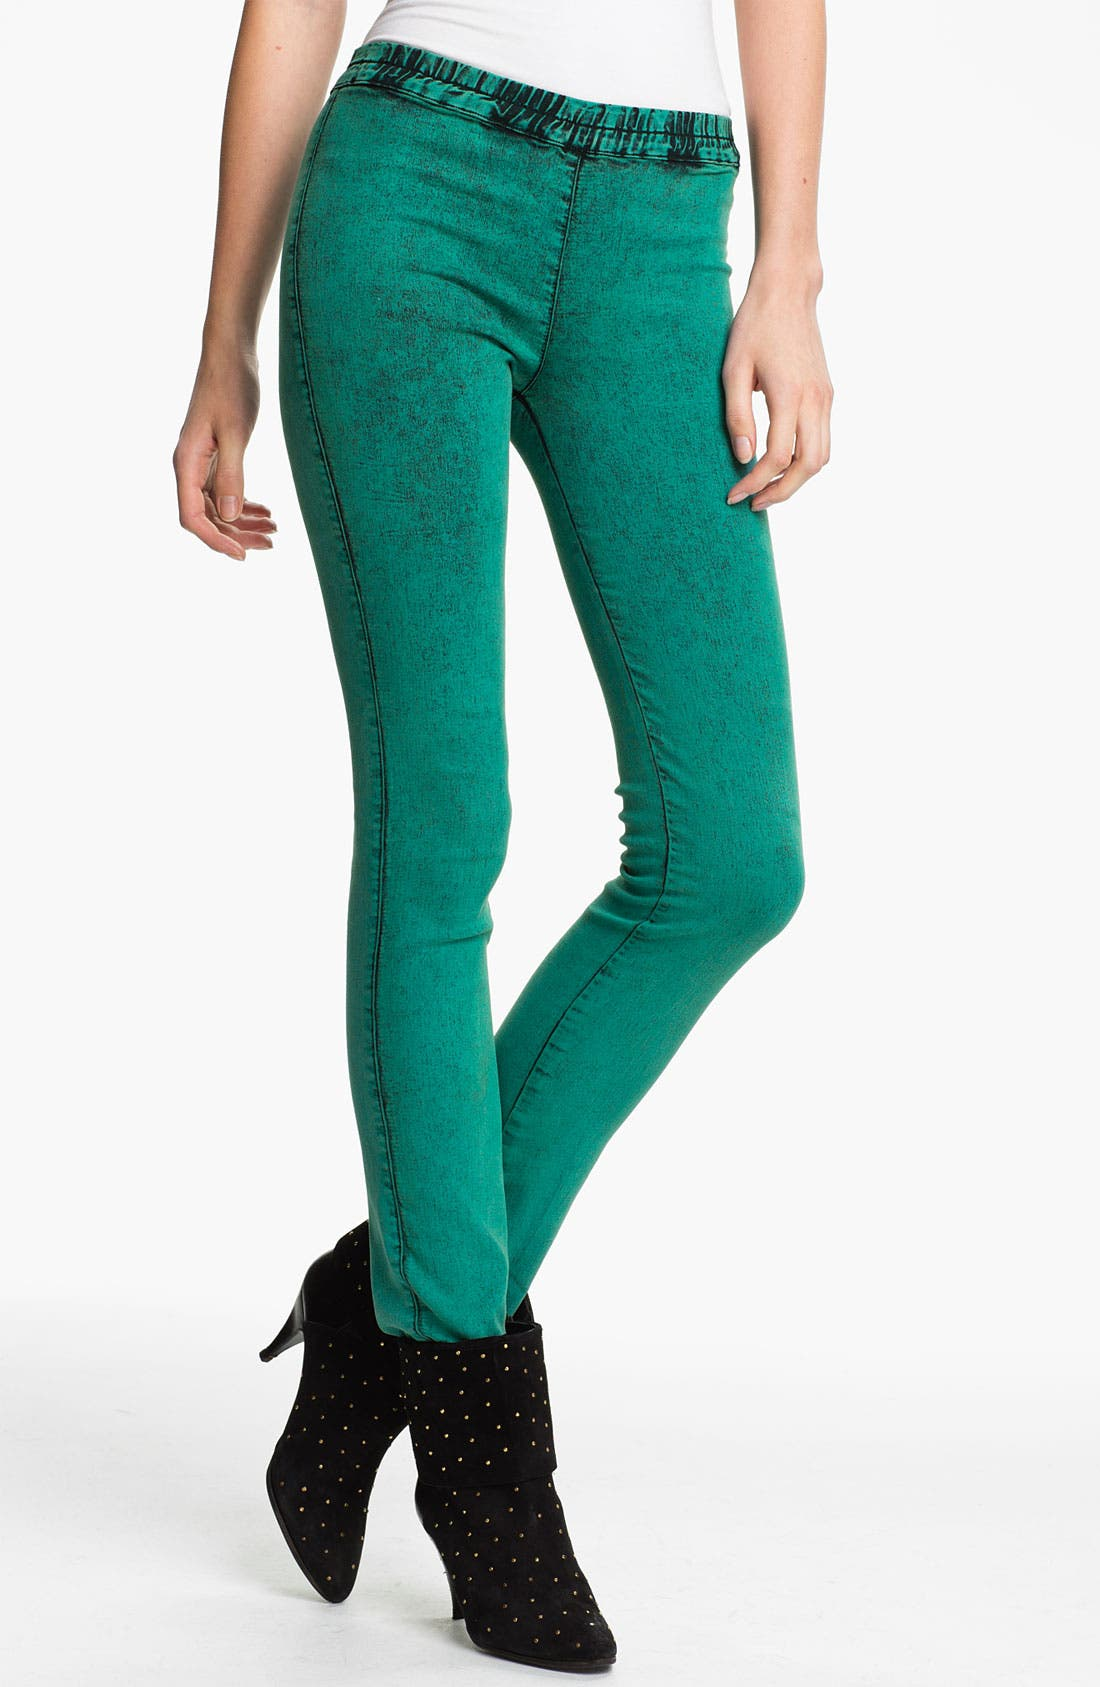 Alternate Image 1 Selected - Kelly Wearstler 'Mineral Wash' Stretch Twill Leggings